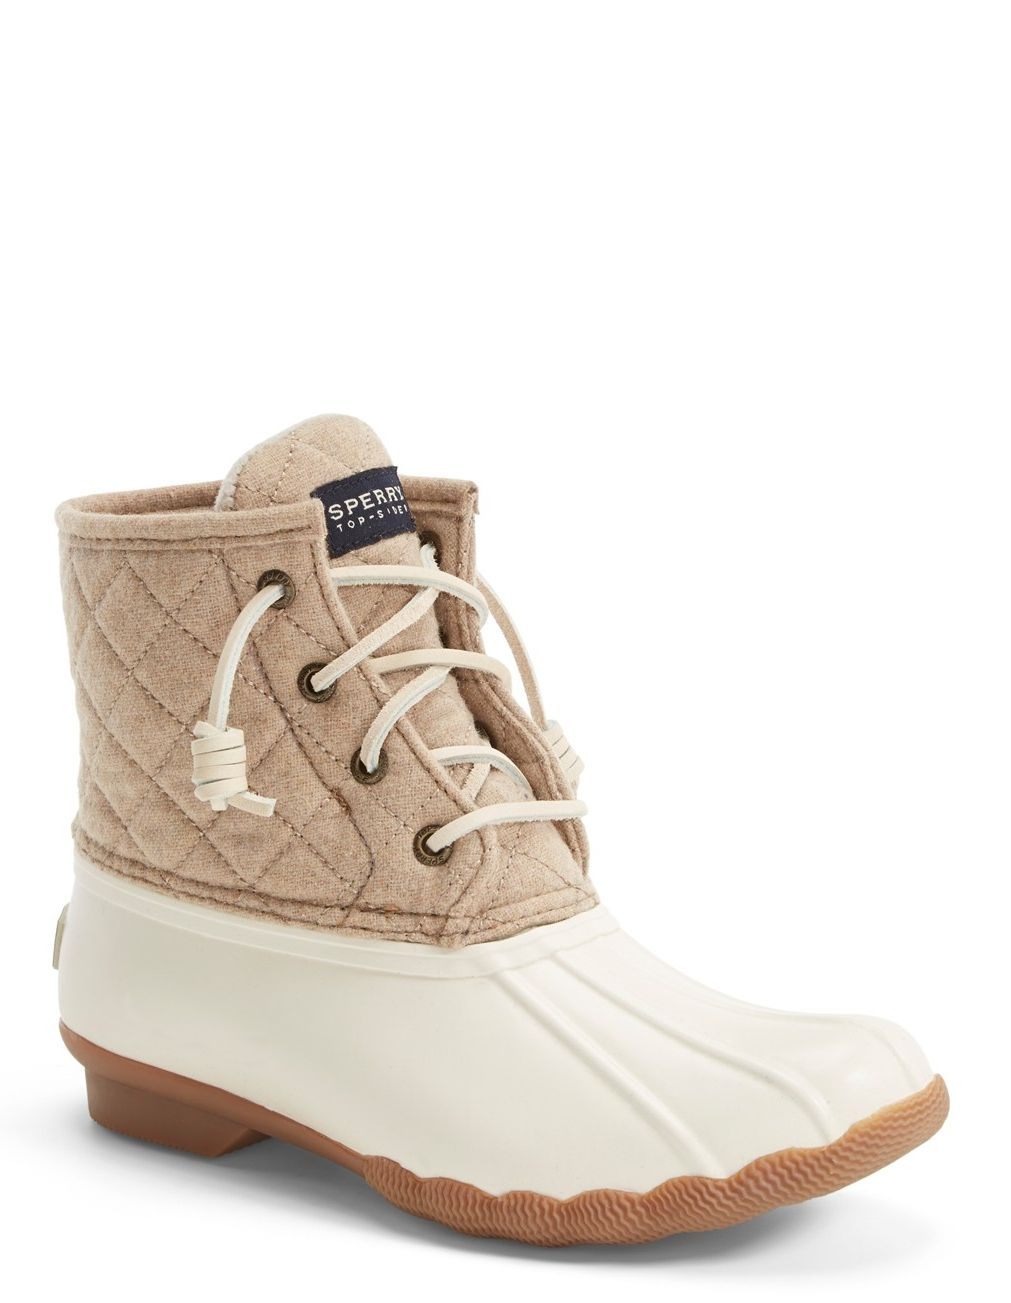 Sperry Top Sider Womens Rain Shoes